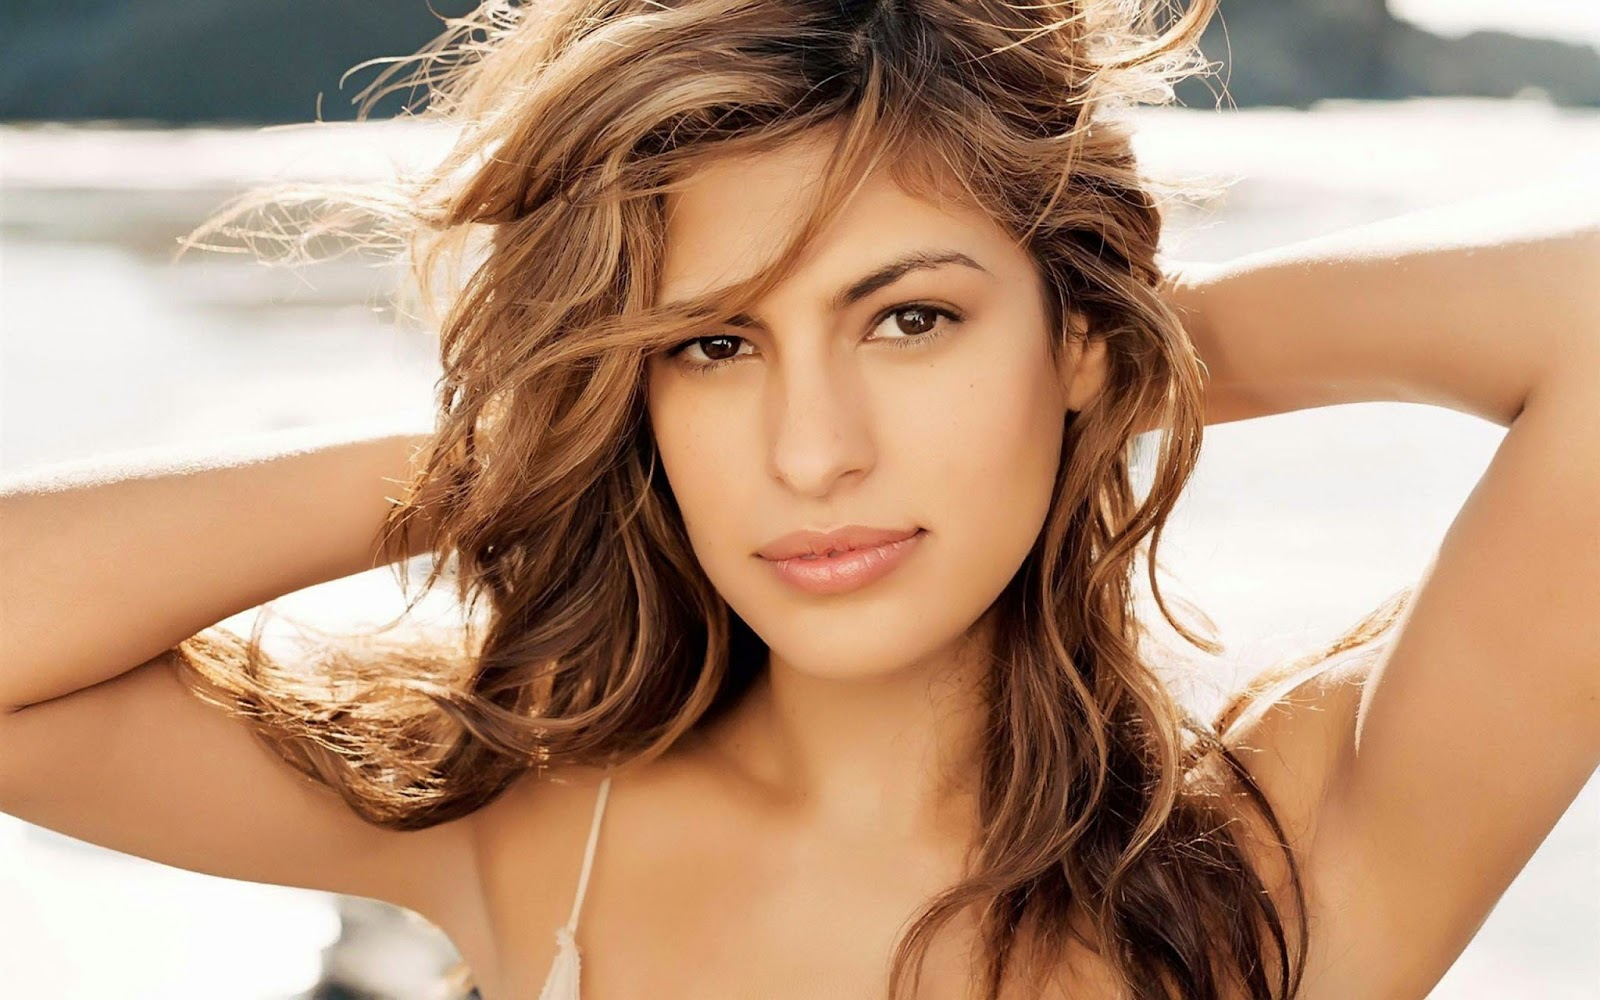 Eva mendes widescreen wallpaper at beach